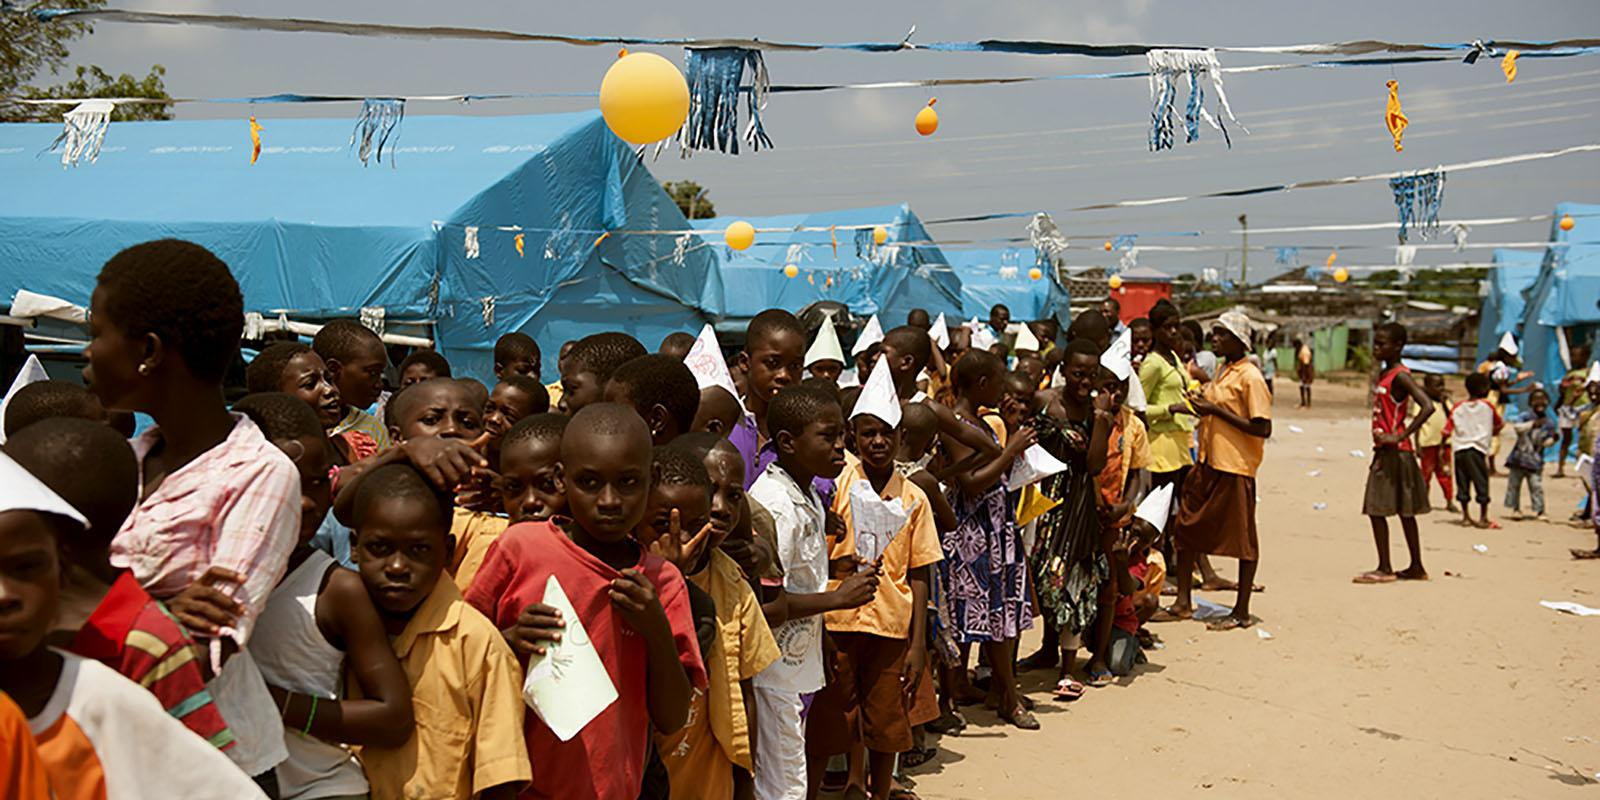 Children queing up to vote in a refugee camp